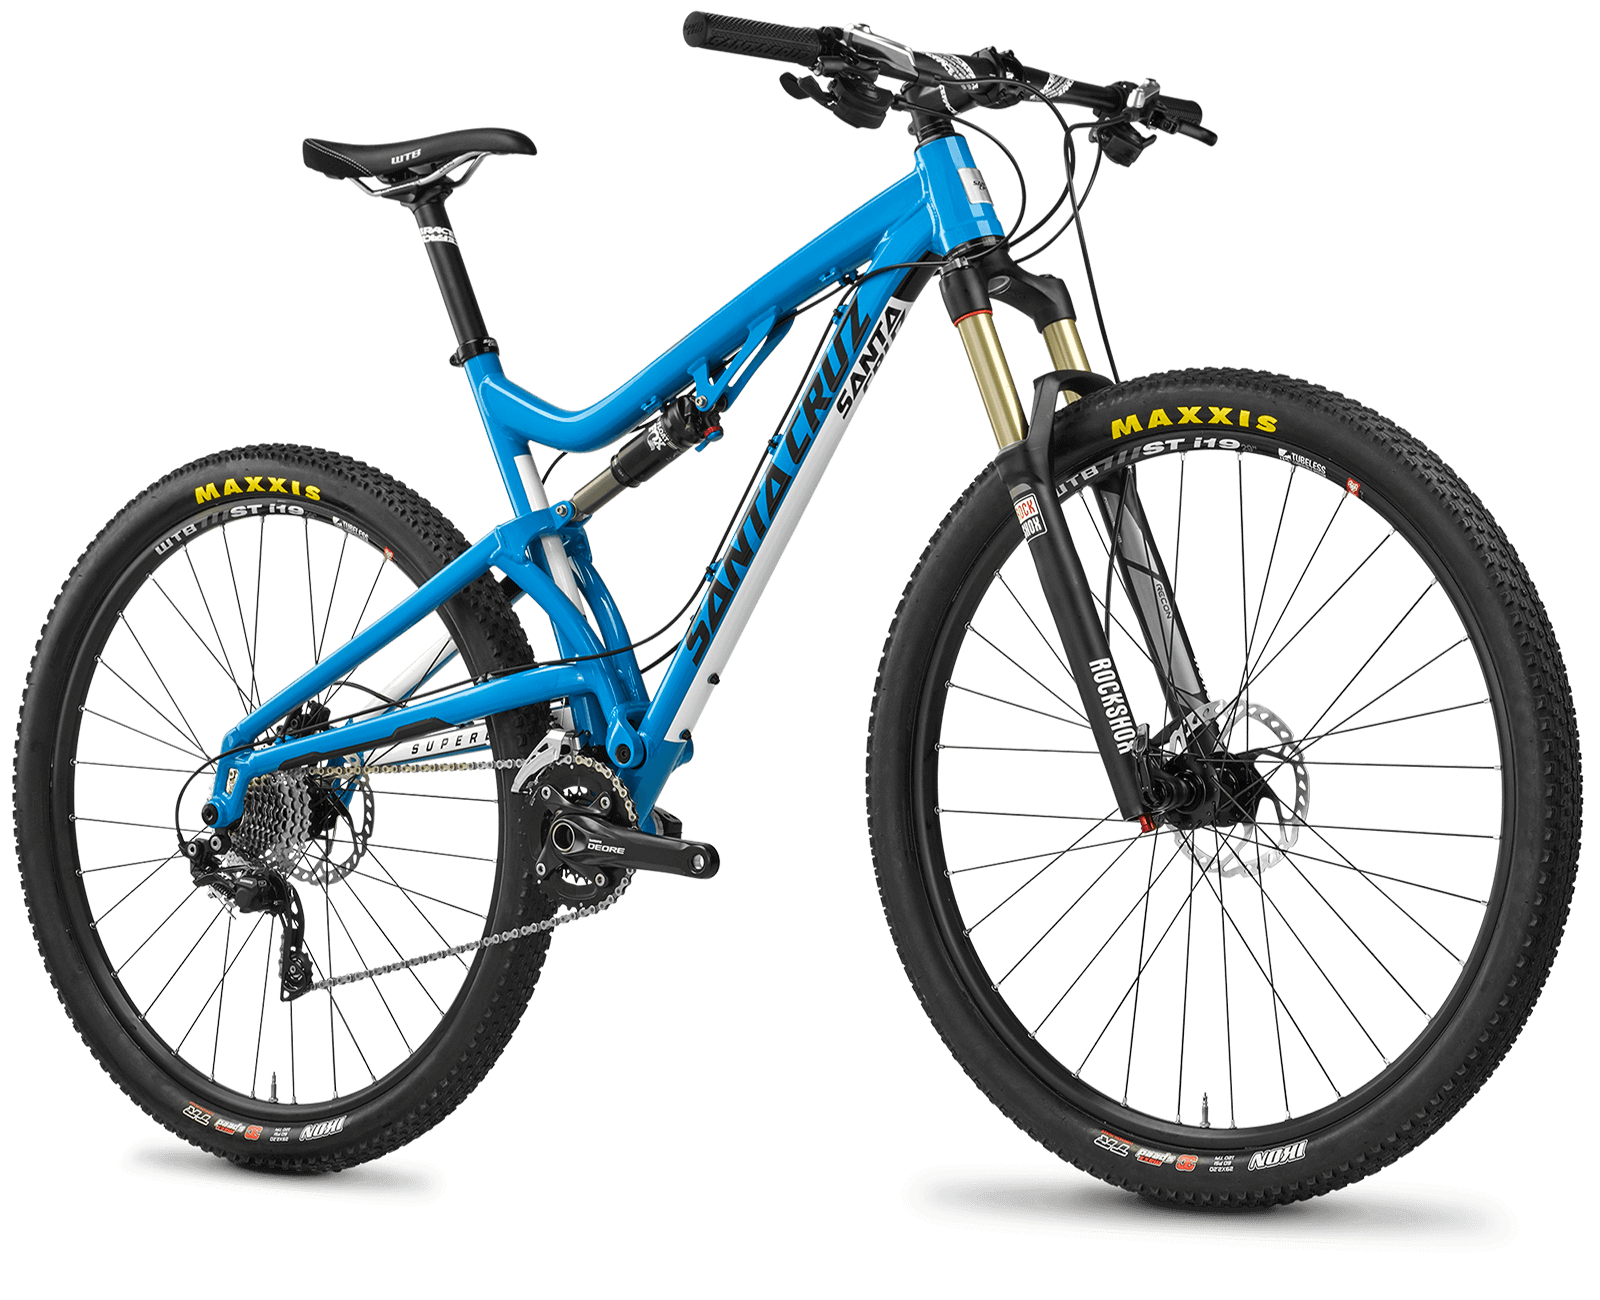 Santa Cruz Superlight, Blue bike, cycle Png #45202.